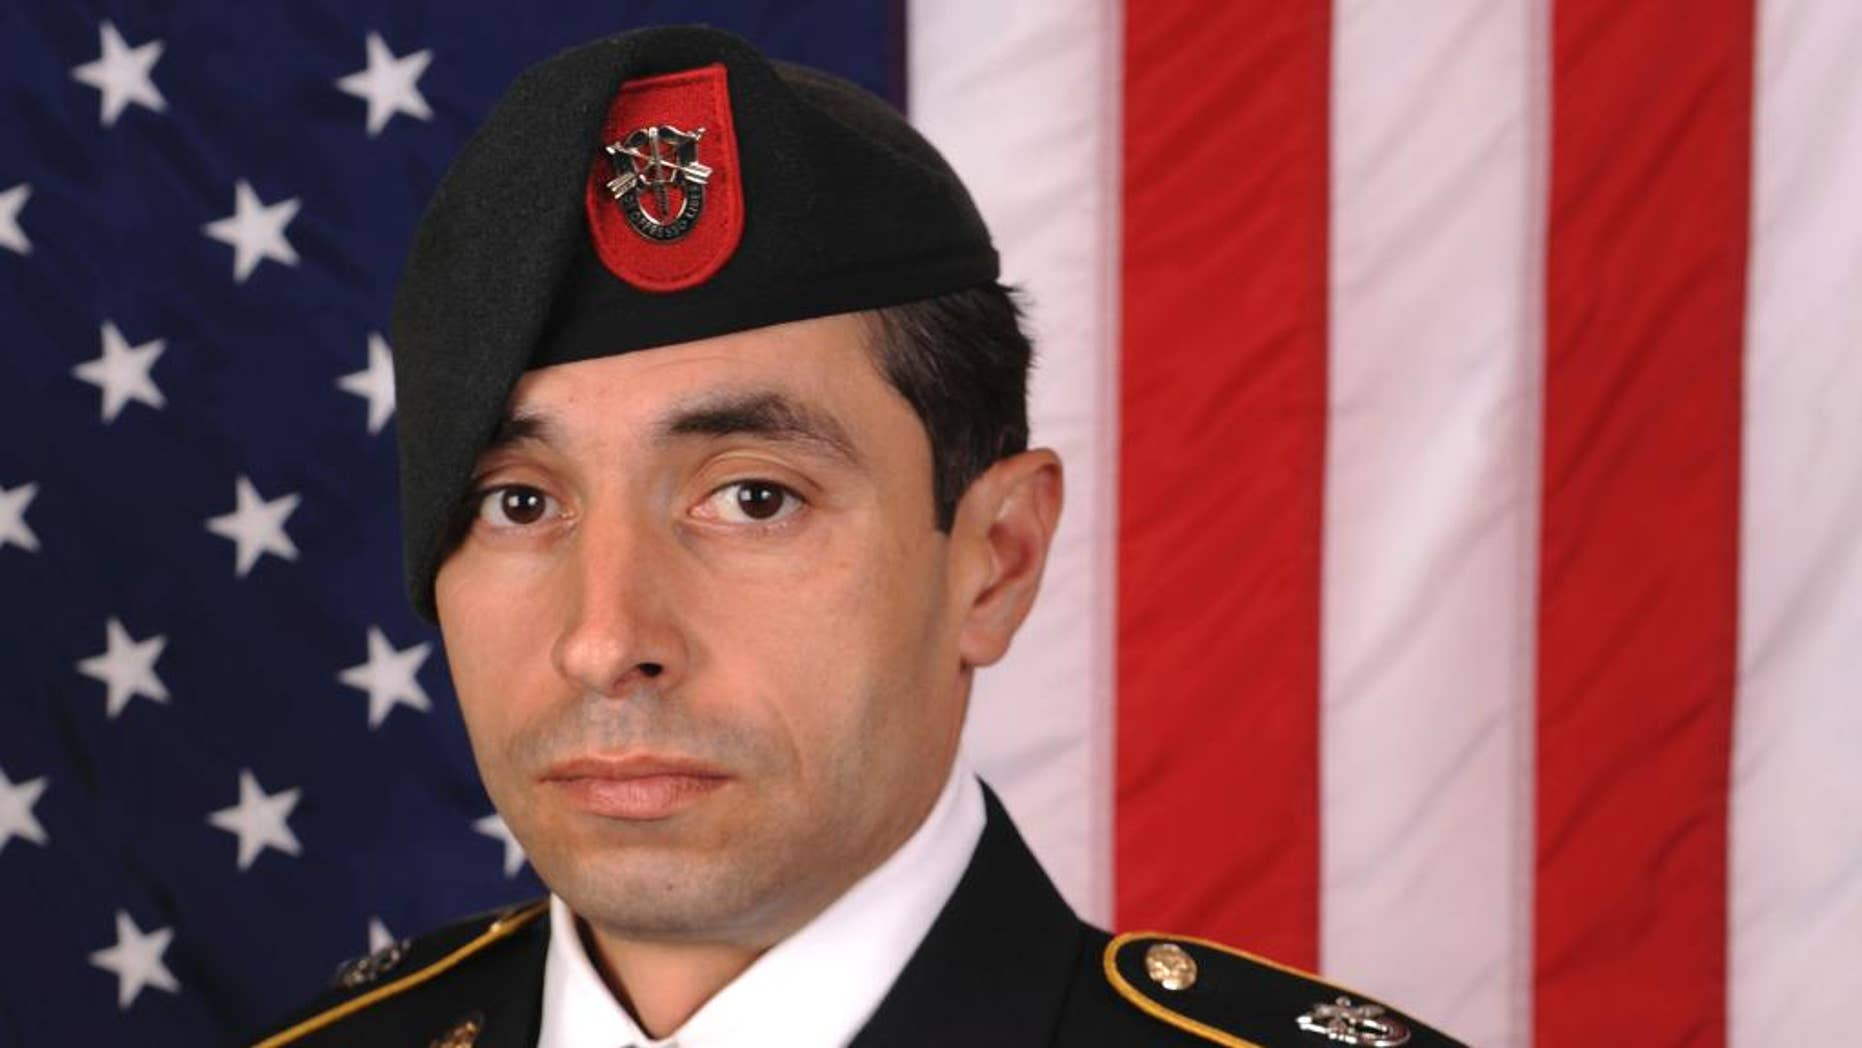 This photo provided by the US Army shows Staff Sgt. Mark De Alencar, who was killed Saturday, April 8, 2017, in combat in Afghanistan. (US Army via AP)